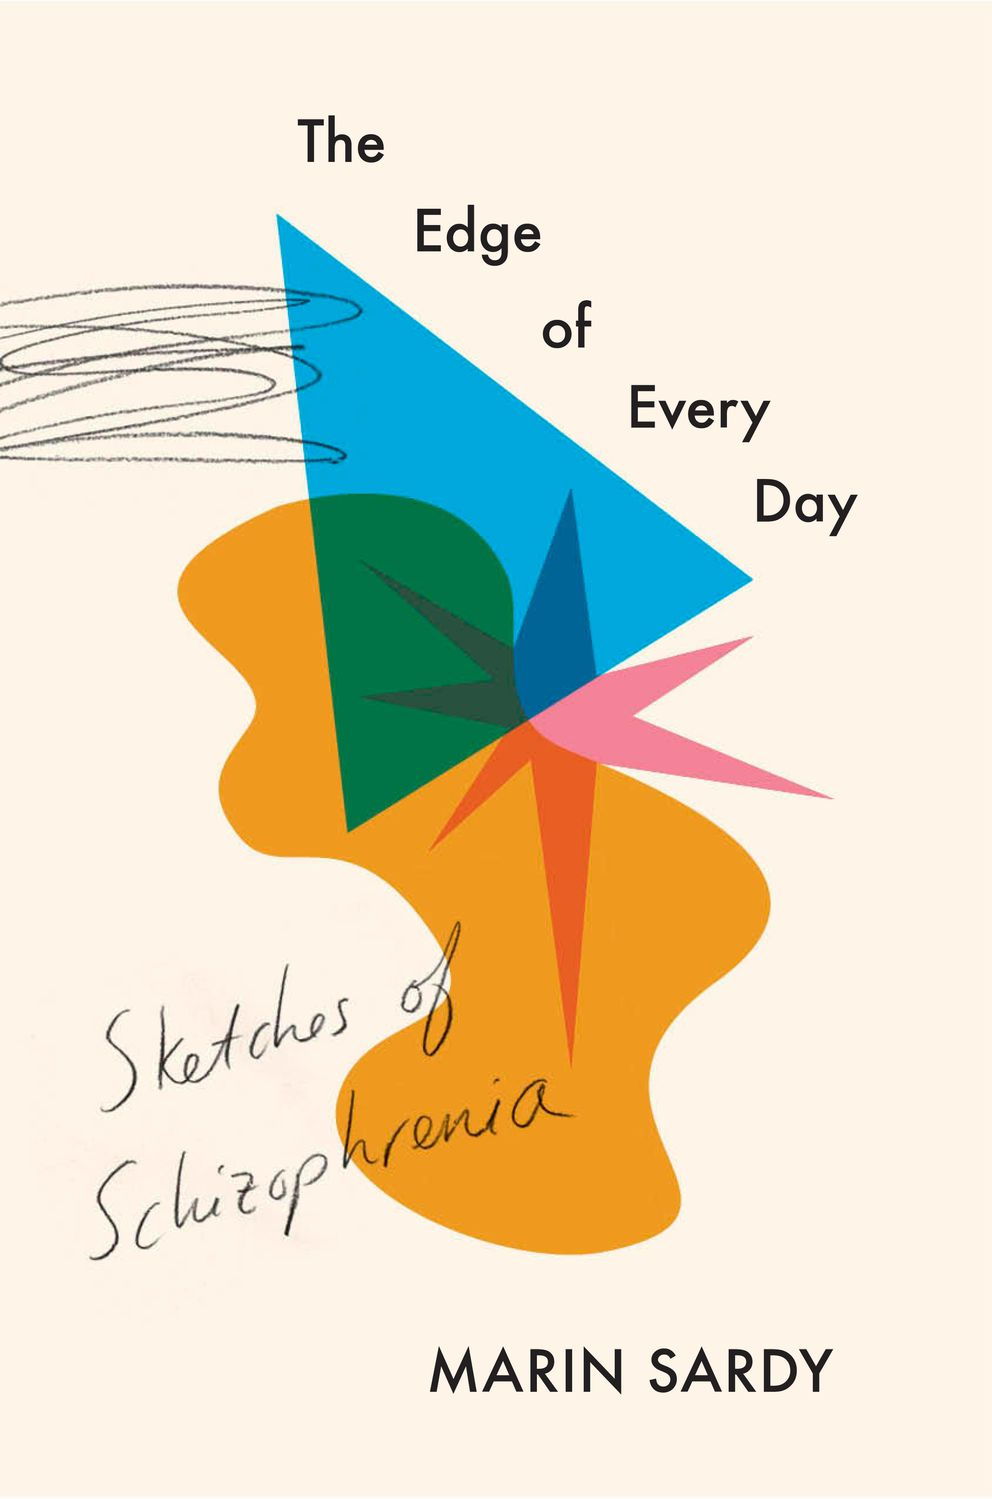 'The Edge of Every Day: Sketches of Schizophrenia, ' by Marin Sardy